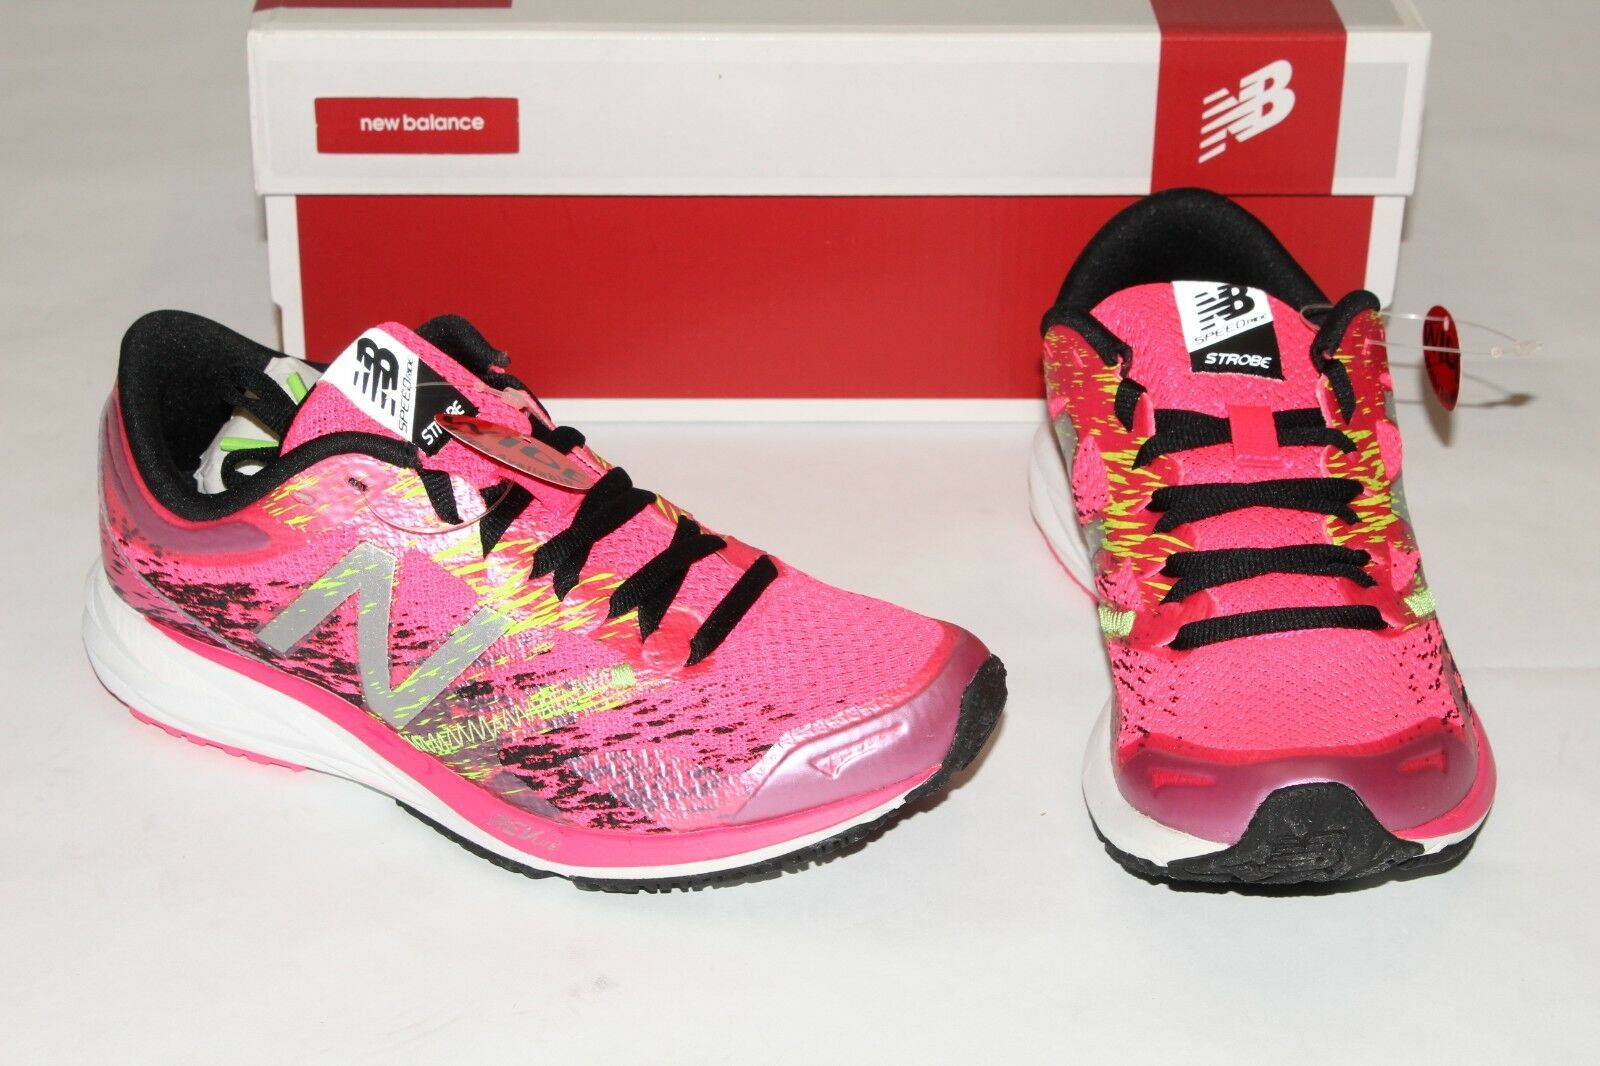 New Balance  Women's Wstro Running Exercise shoes 5 D Wide Pink  first-class quality